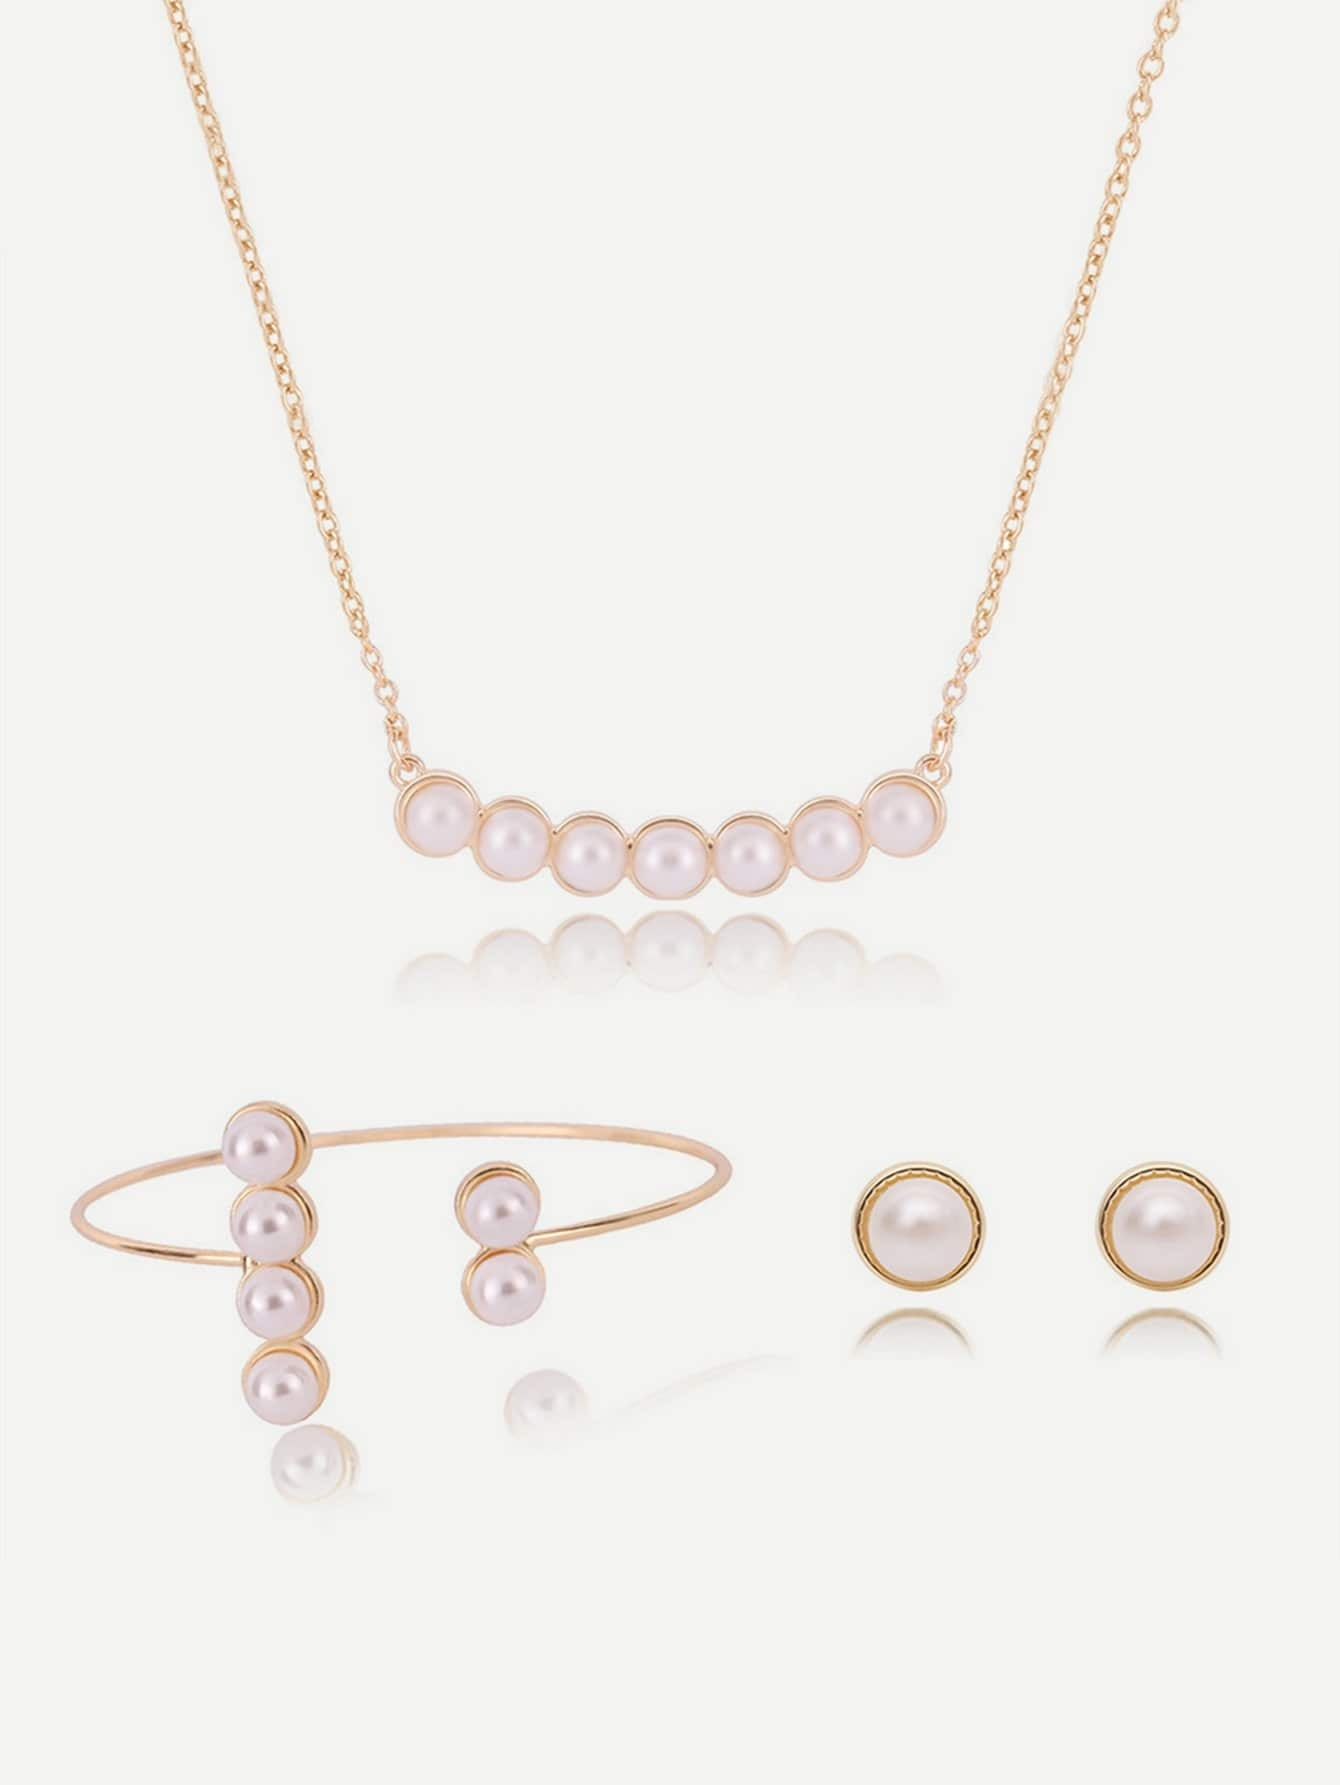 Faux Pearl Chain Necklace & Earrings Bracelet